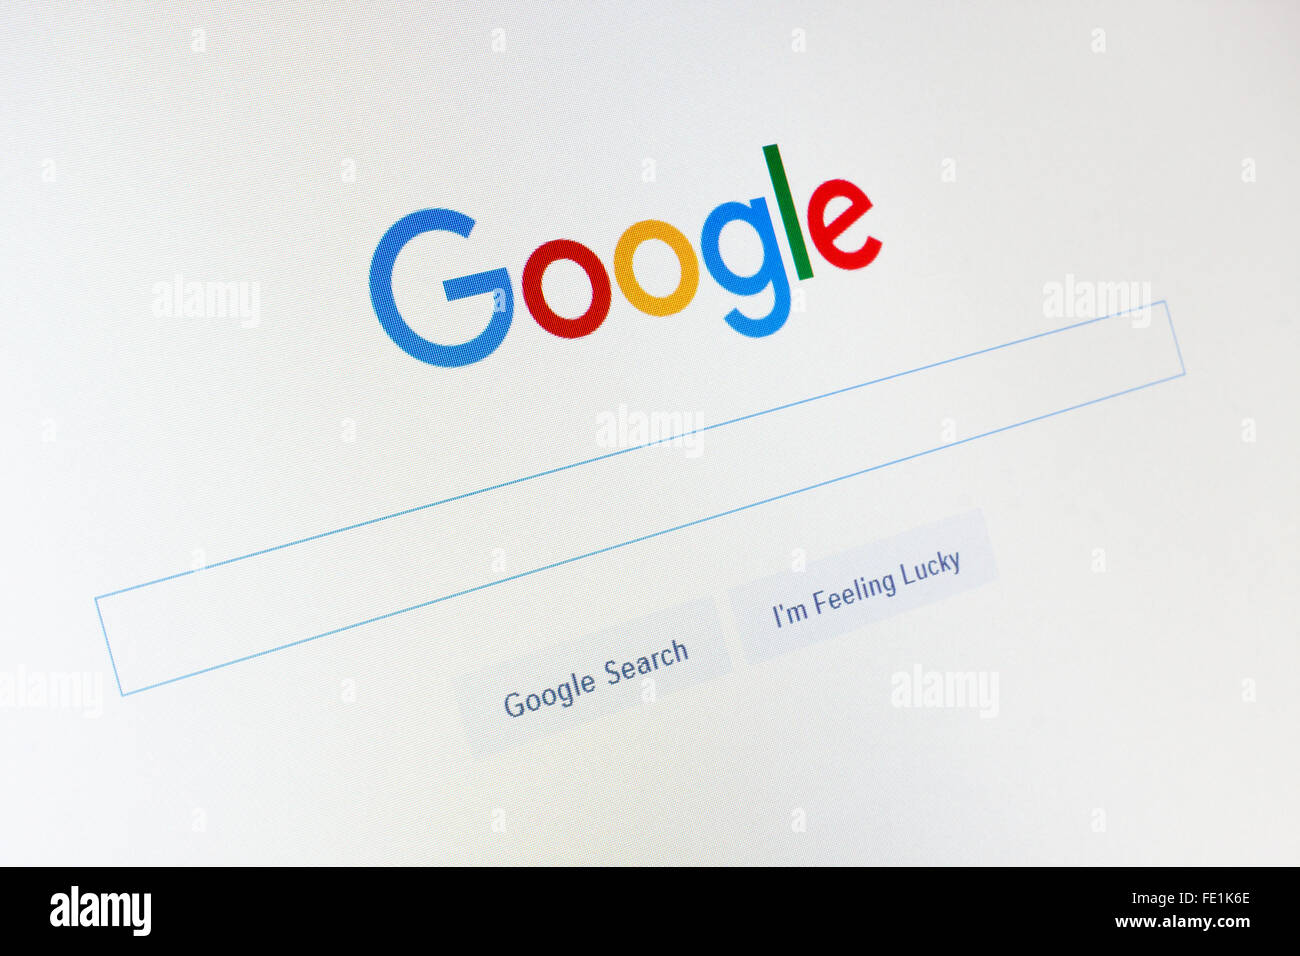 GDANSK, POLAND - NOVEMBER 14, 2015. Google.com homepage and cursor on the screen. Editorial use only - Stock Image